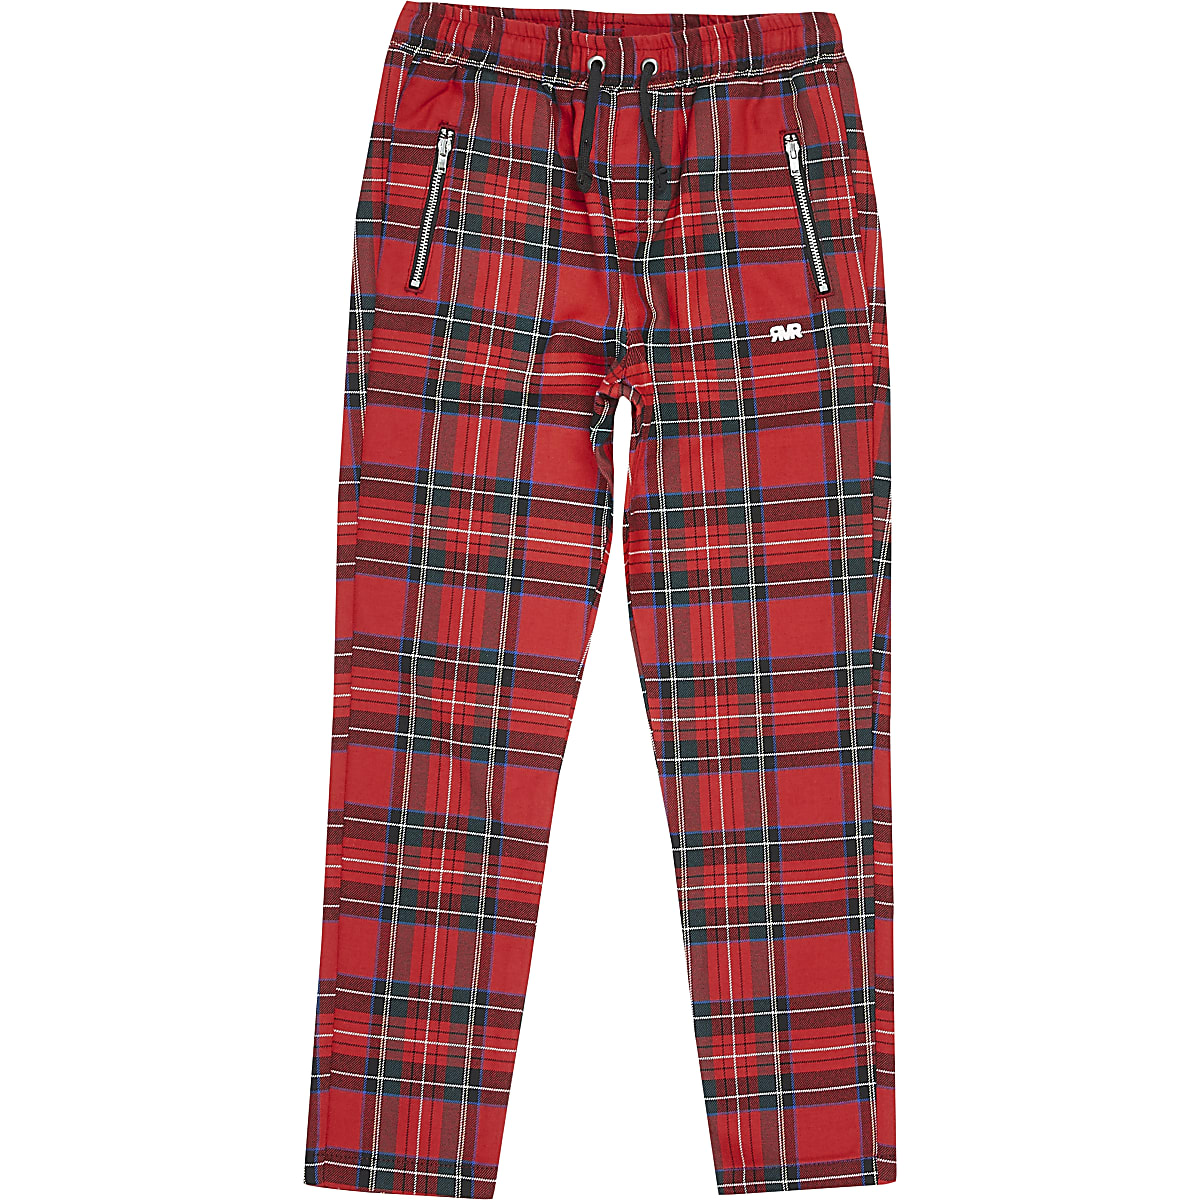 Boys red tartan check trousers